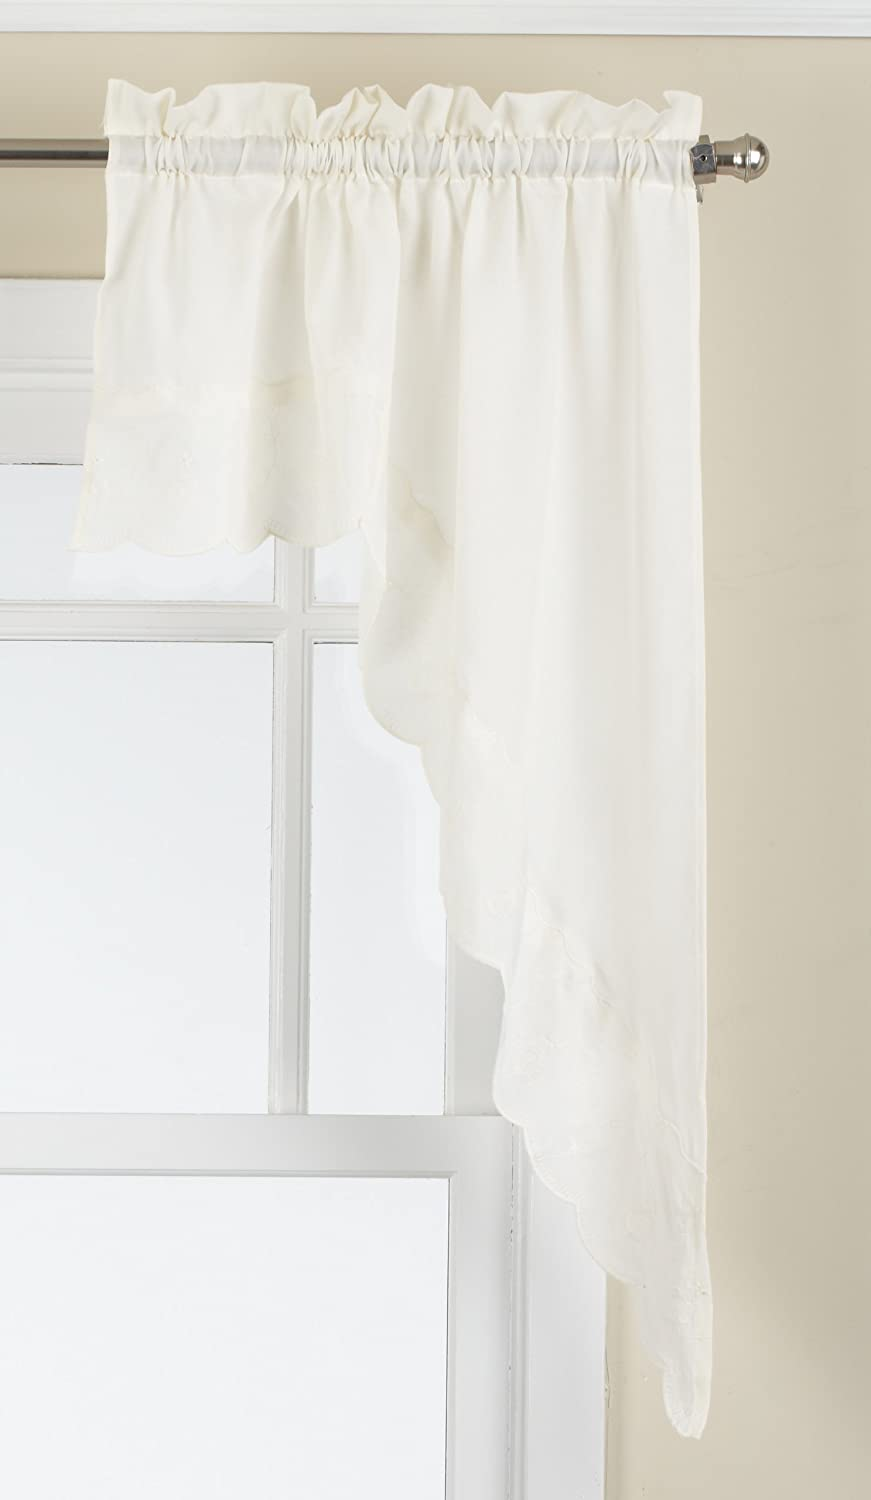 LORRAINE HOME FASHIONS Candlewick Tailored Swag, 60 by 38-Inch, Cream